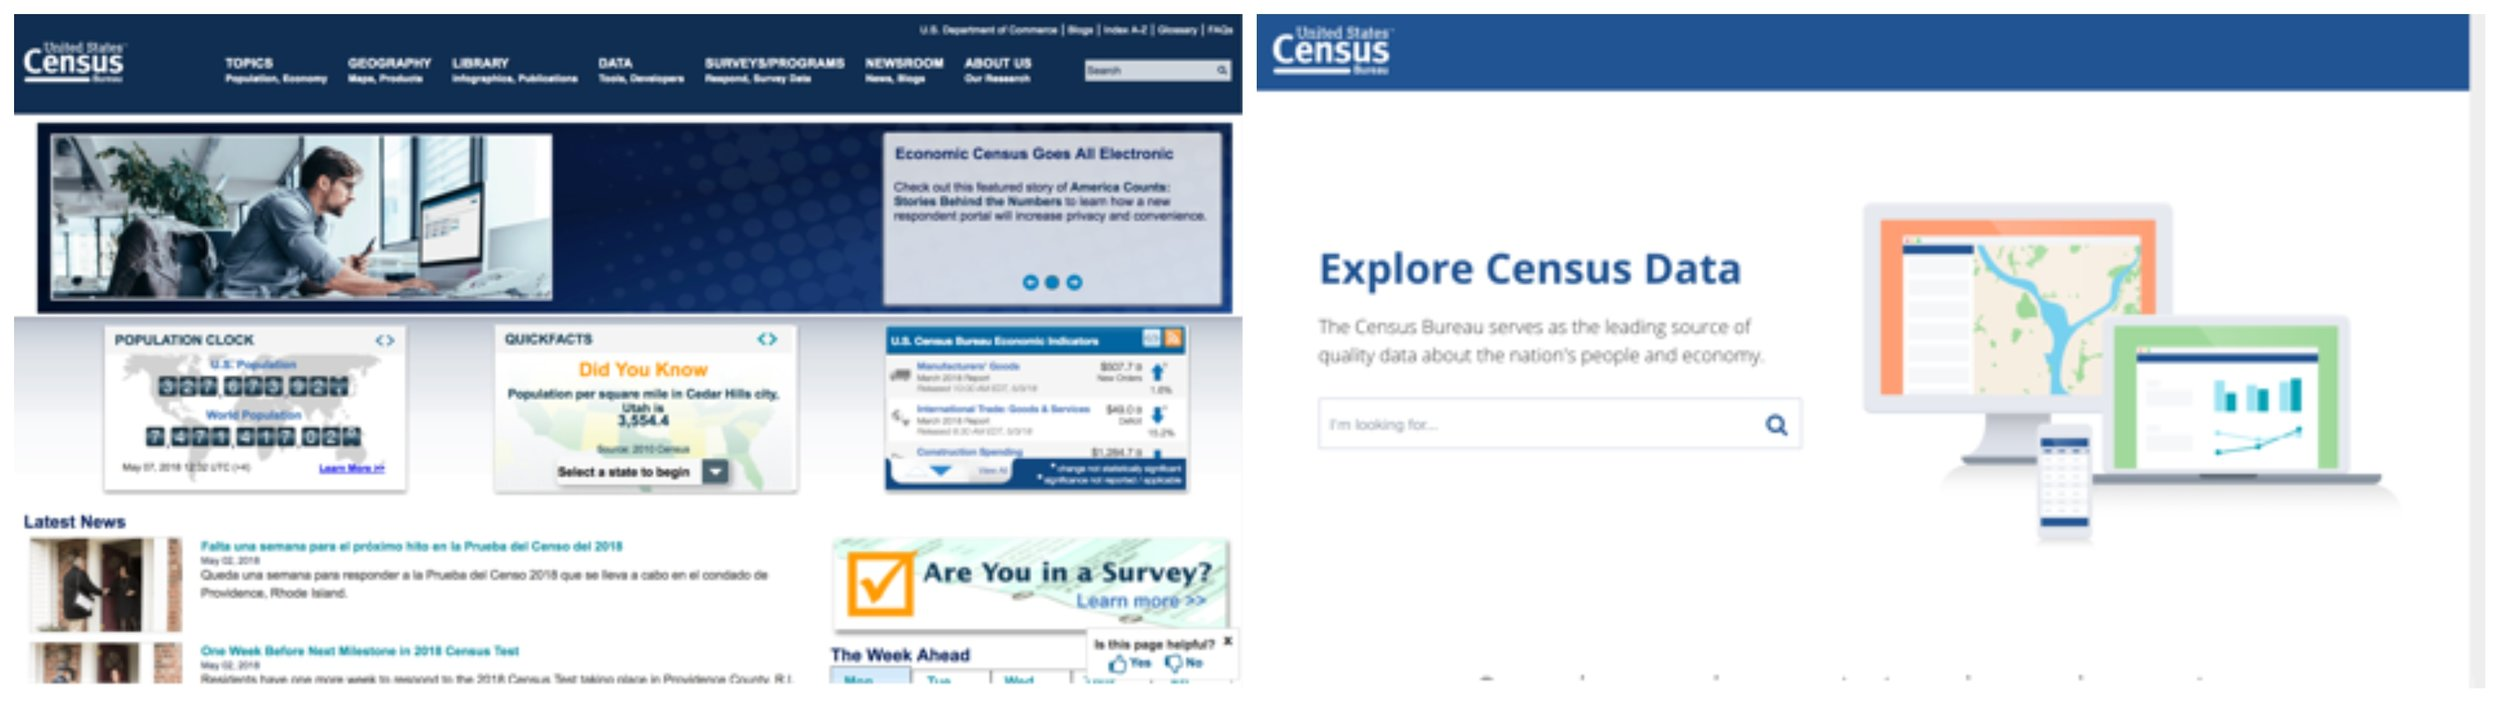 Current Census website (left) and new version in testing (right)